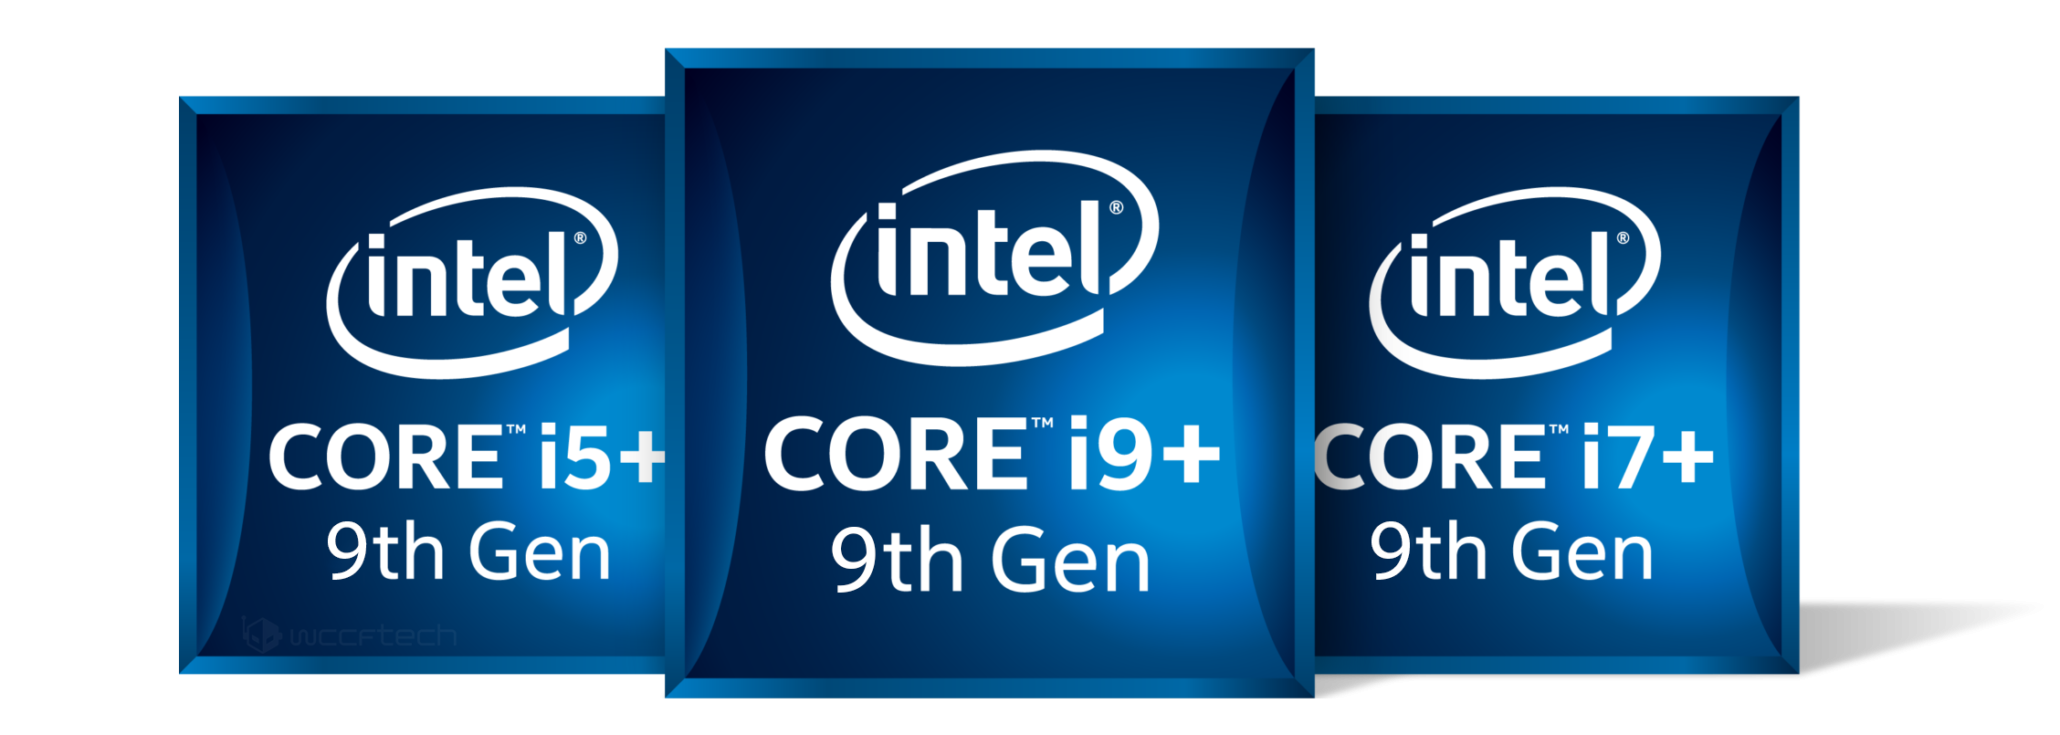 Intel Extreme Core i9 Edition Gaming PCs